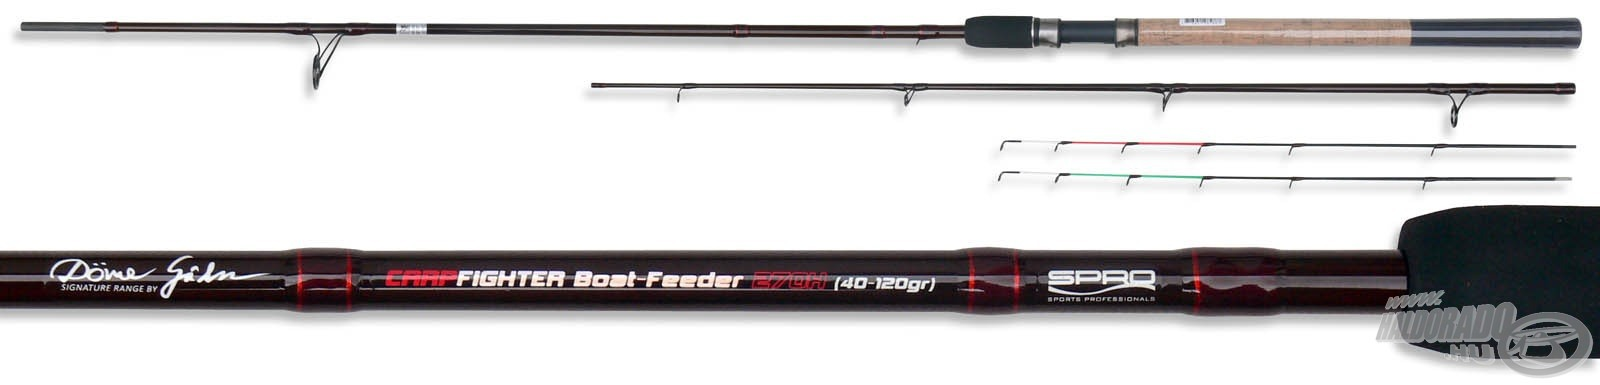 SPRO Team Feeder Carp Fighter Boat 300 - by D�me G�bor 13990Ft-t�l